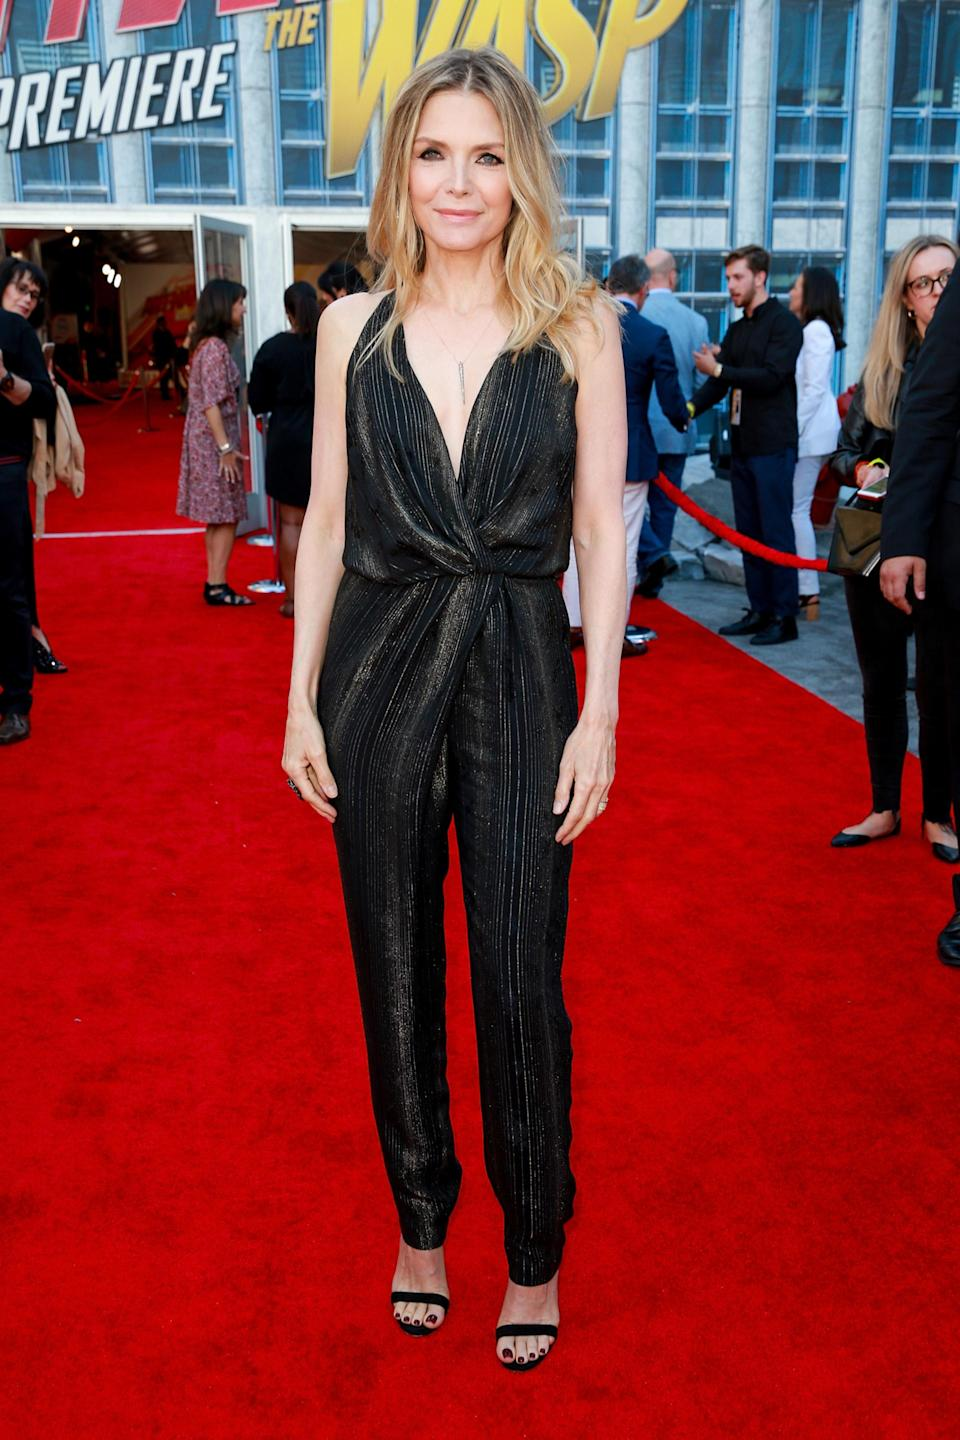 <p>On June 25, Michelle Pfeiffer joined the A-list crowd at the premiere of 'Ant-Man and the Wasp'. For the red carpet event, the actress chose a glitzy jumpsuit by Saint Laurent. <em>[Photo: Getty]</em> </p>